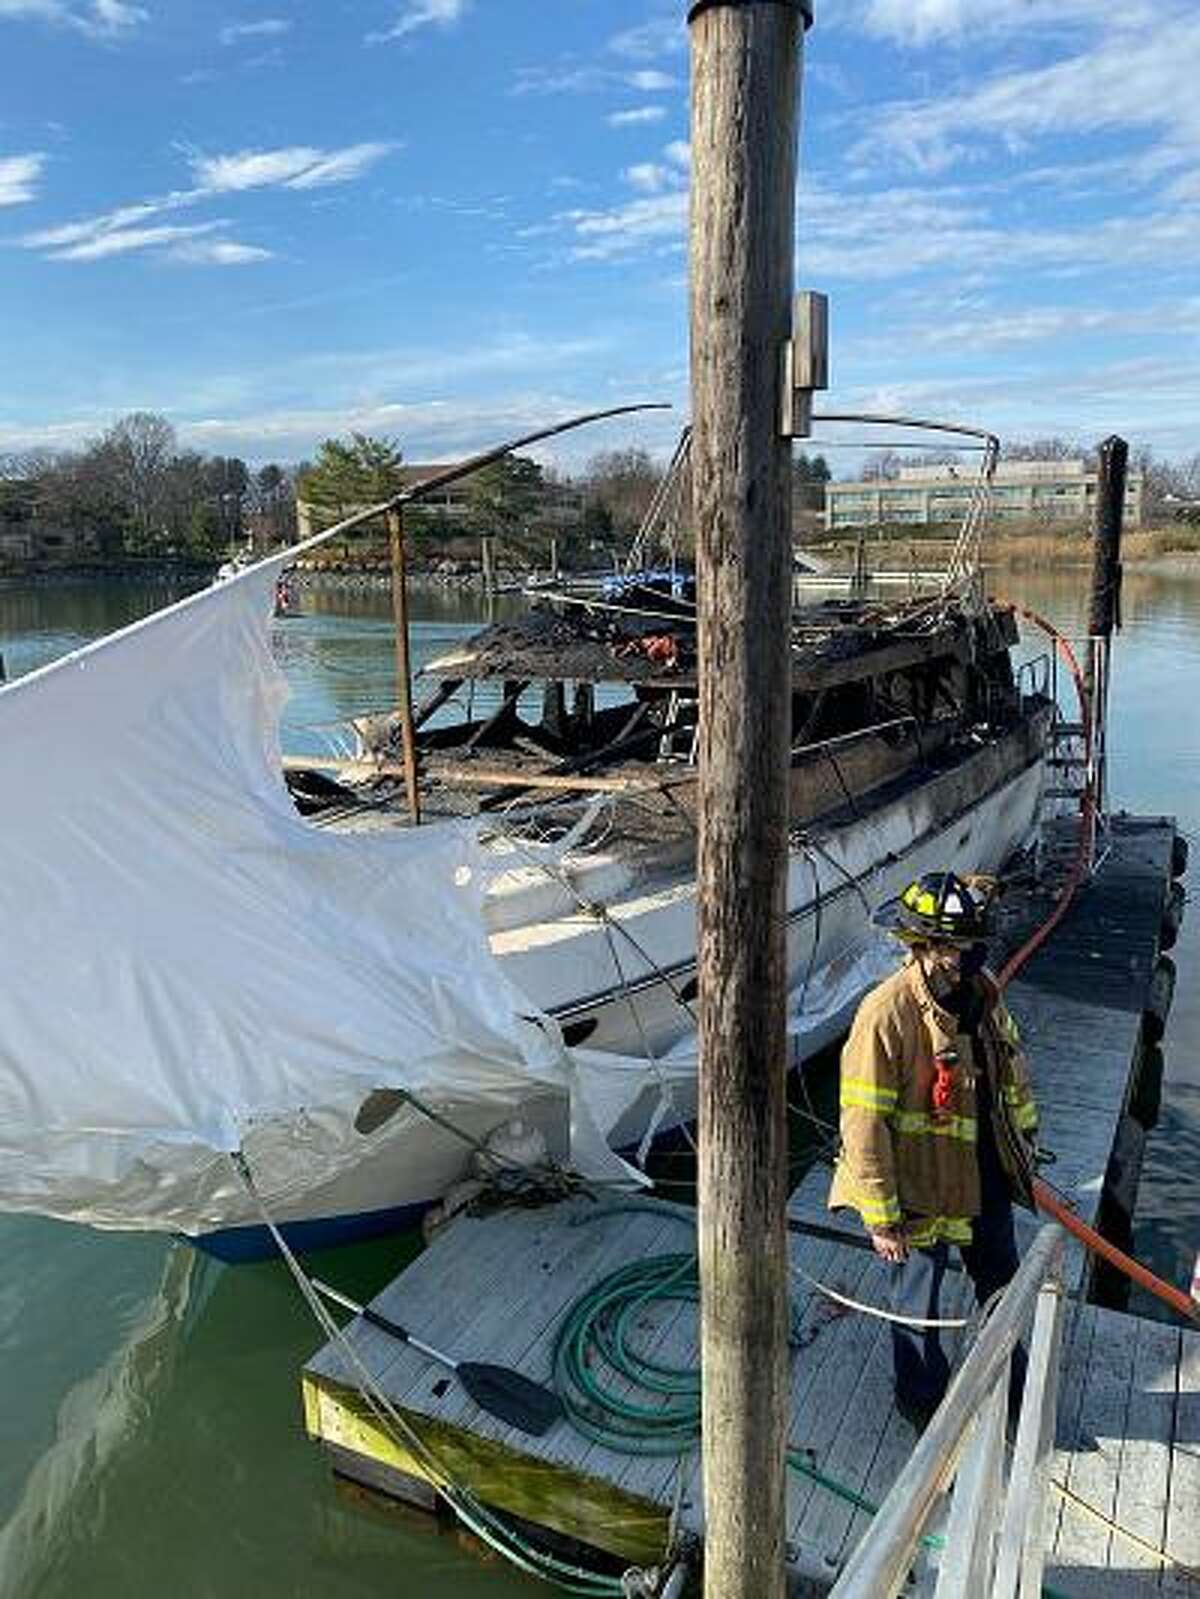 Fire officials responded to a boat fire at Dolphin Cove on Saturday afternoon.